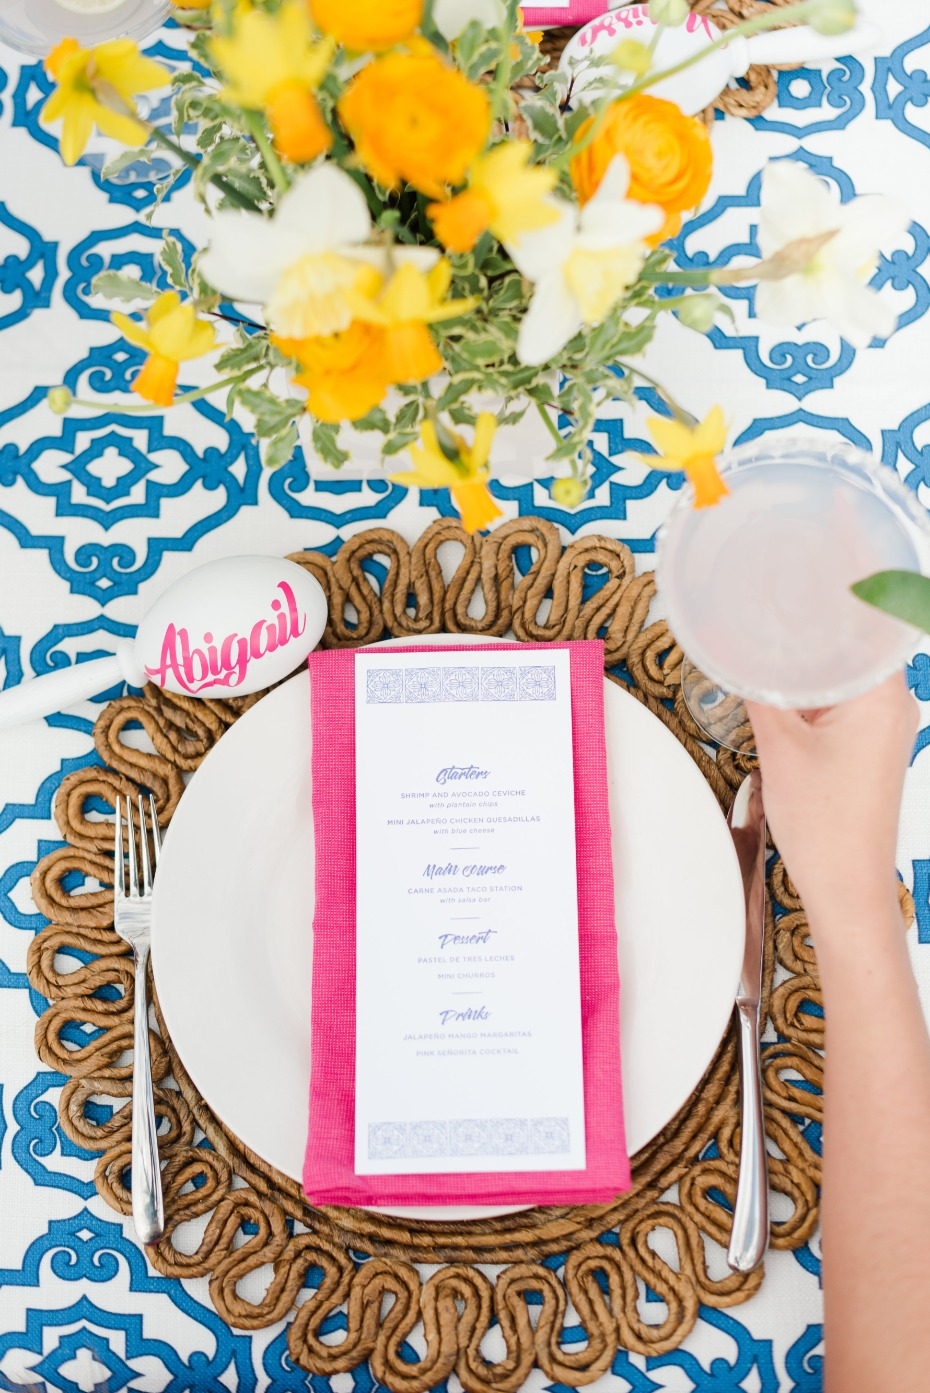 bright and exciting fiesta themed table setting